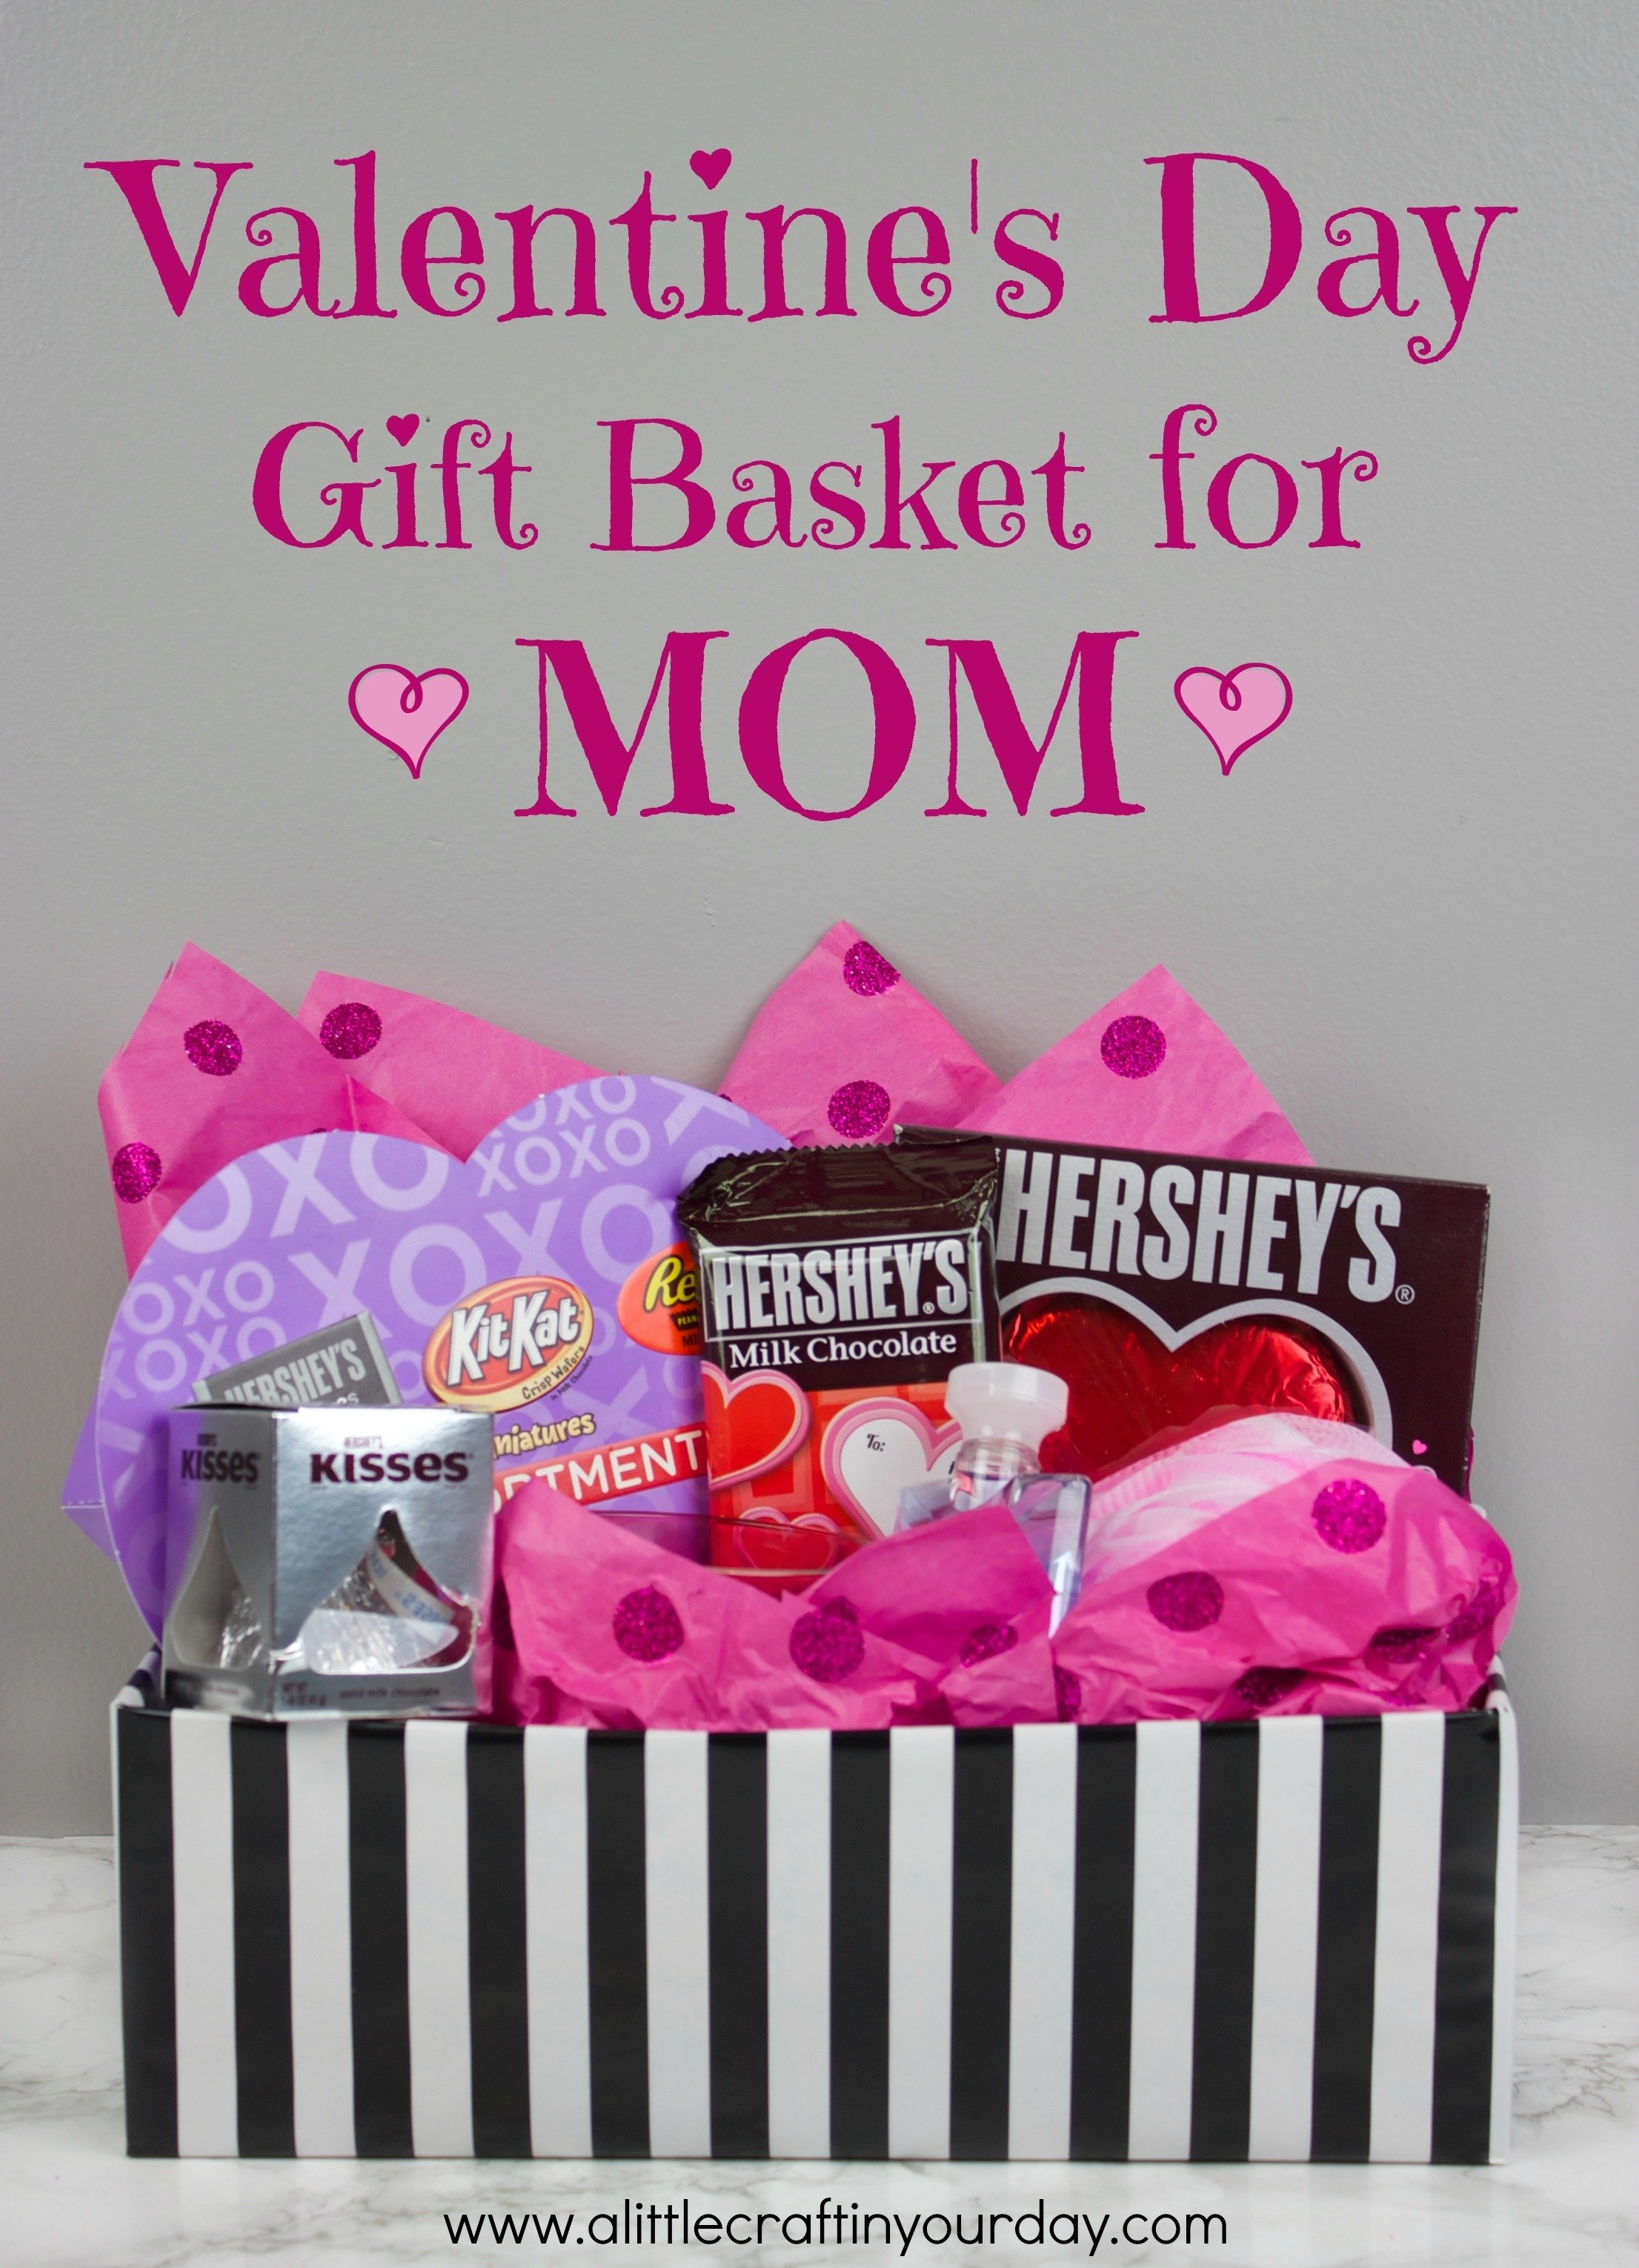 10 Great Valentines Gift Ideas For Mom valentines day gift basket for mom gift valentine baskets and 2021